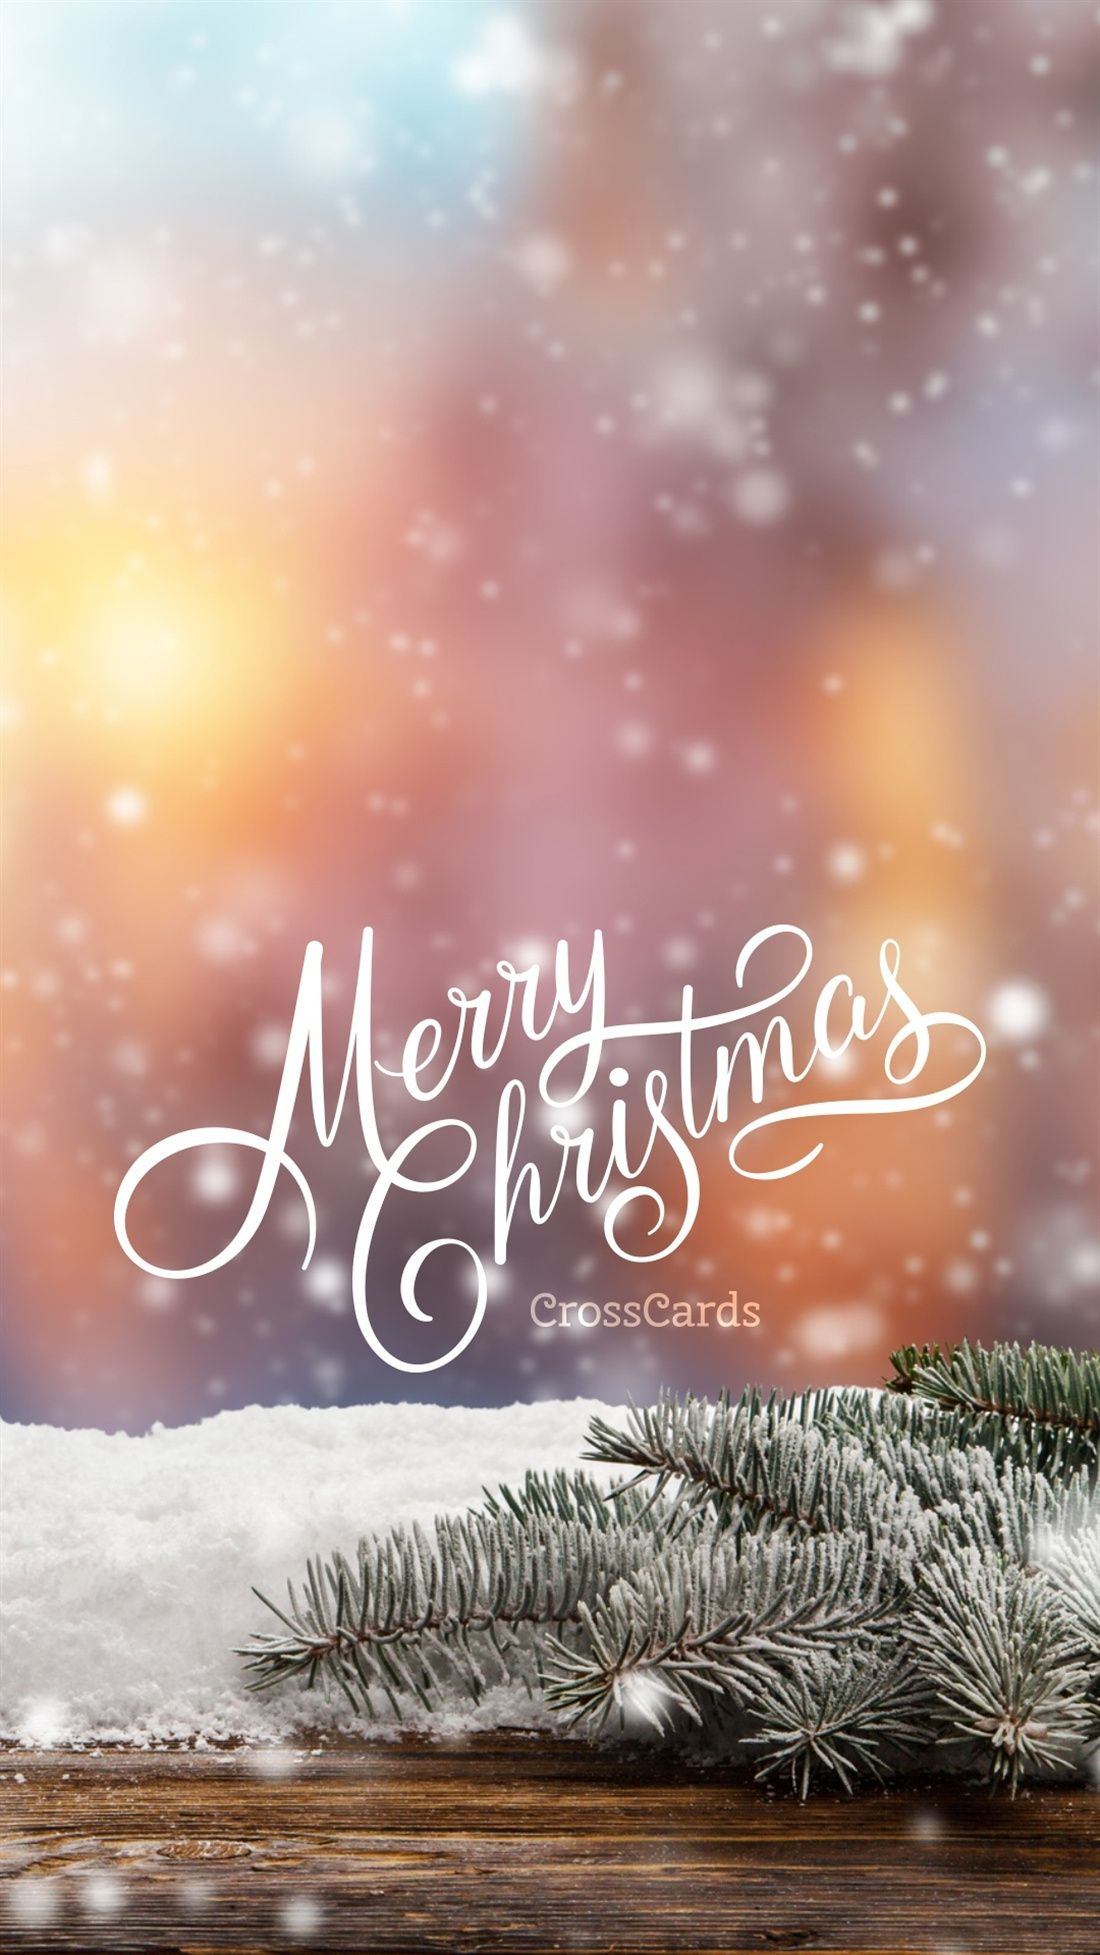 Merry Christmas to You Merry christmas wallpaper